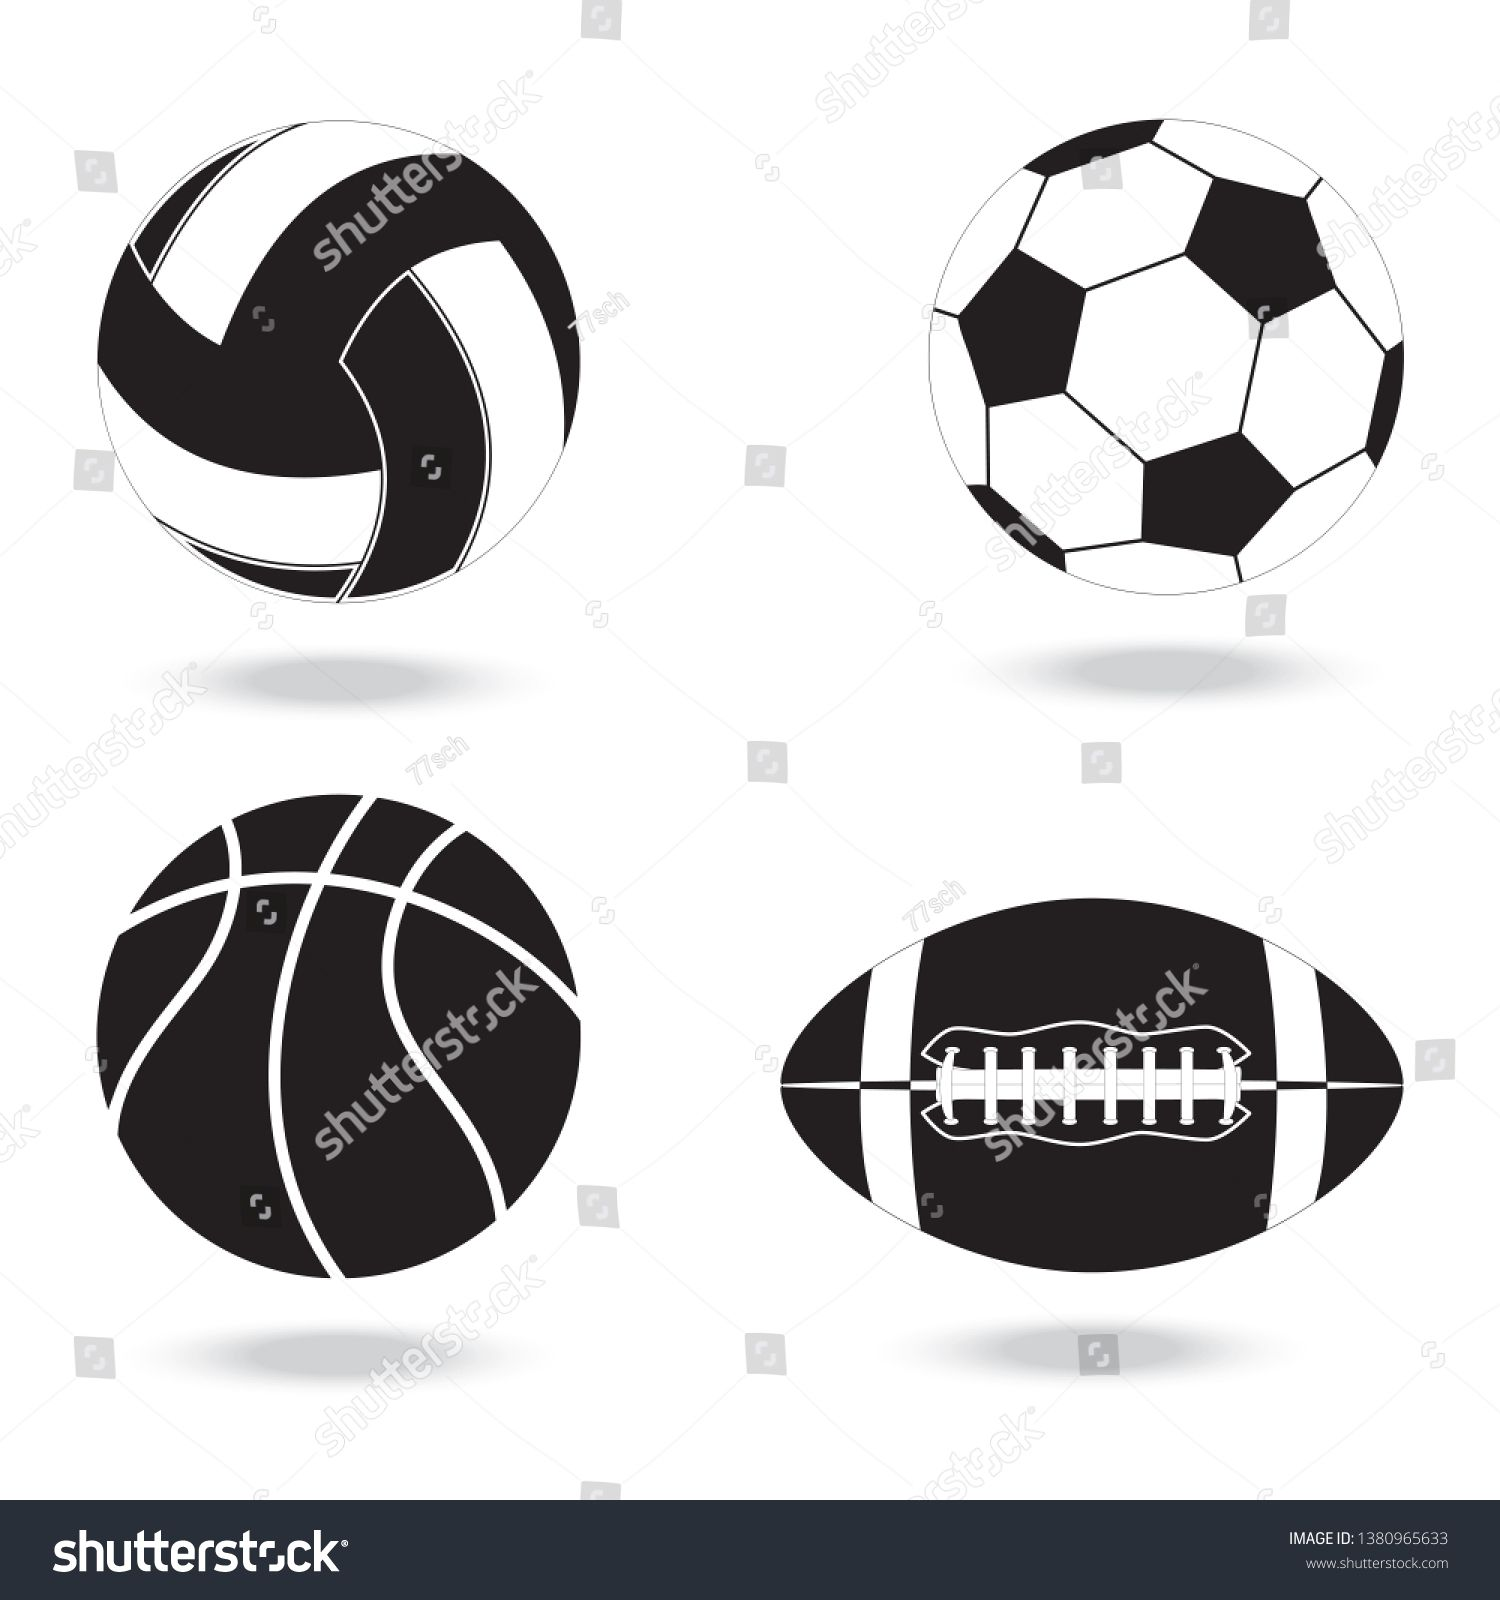 Black And White Icons Of Balls For Different Sports Balls For Volleyball Football Basketball And American Football Ad Different Sports Sport Icon Ball